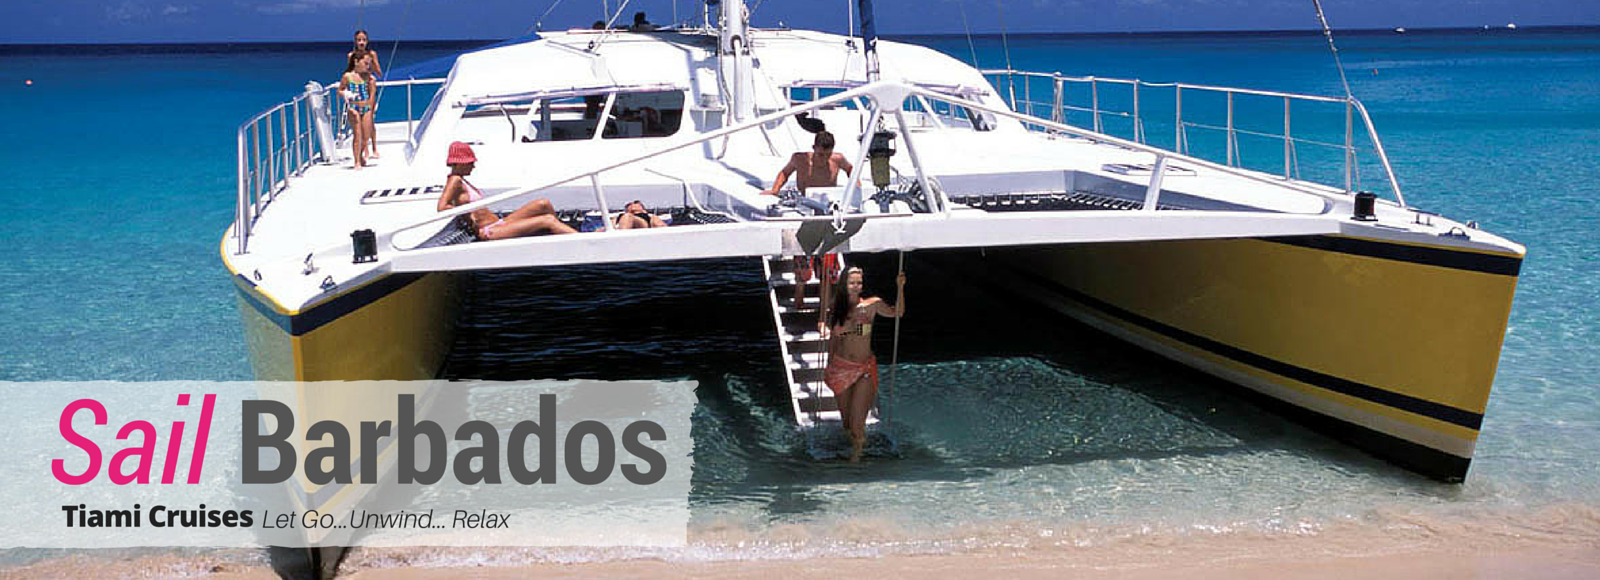 Sail Barbados with Premier Attractions: Let Go...Unwind...Relax